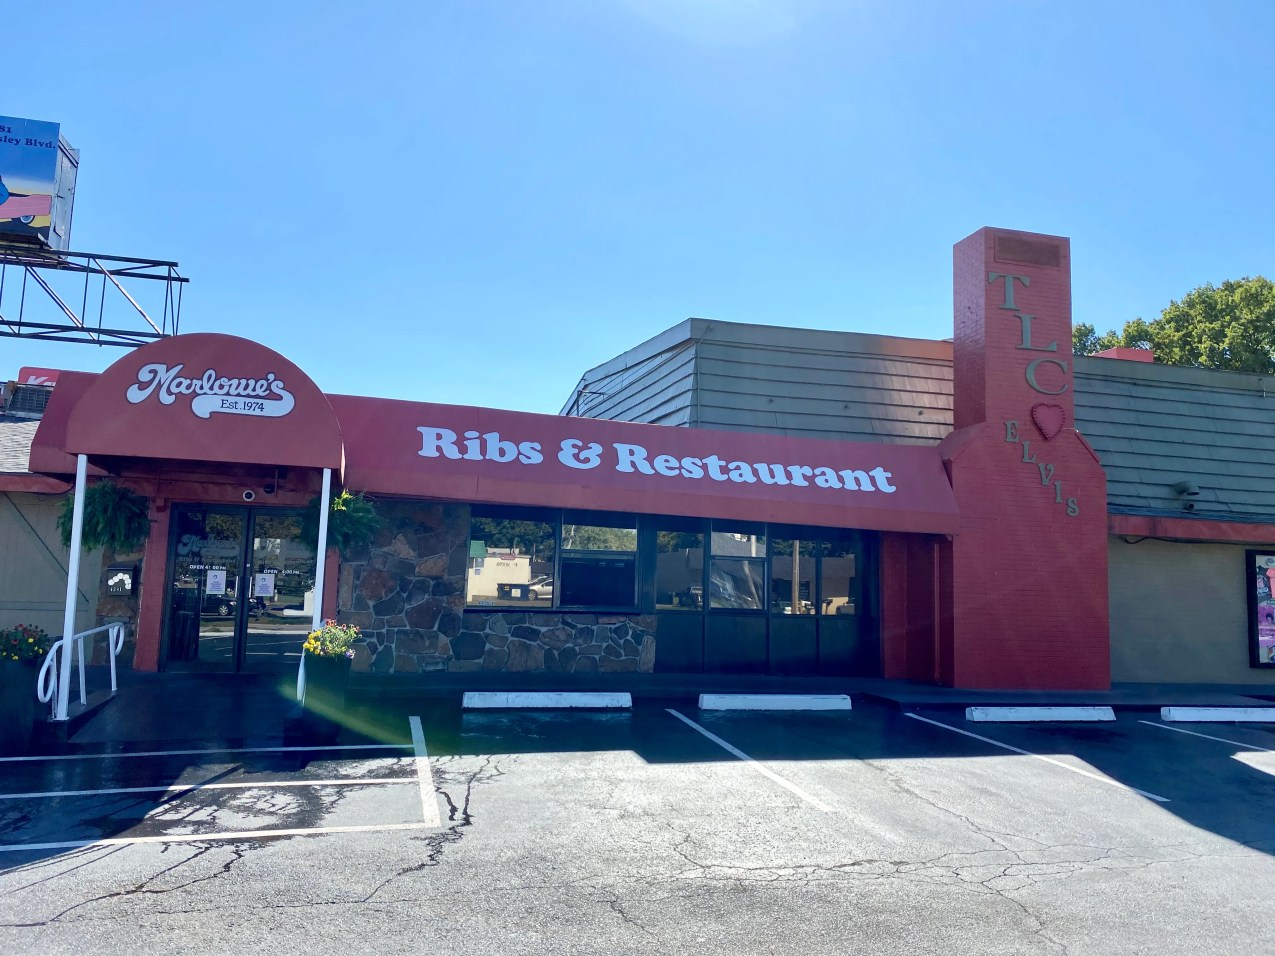 Marlowe's Ribs & Restaurant has been in Whitehaven since 1974.